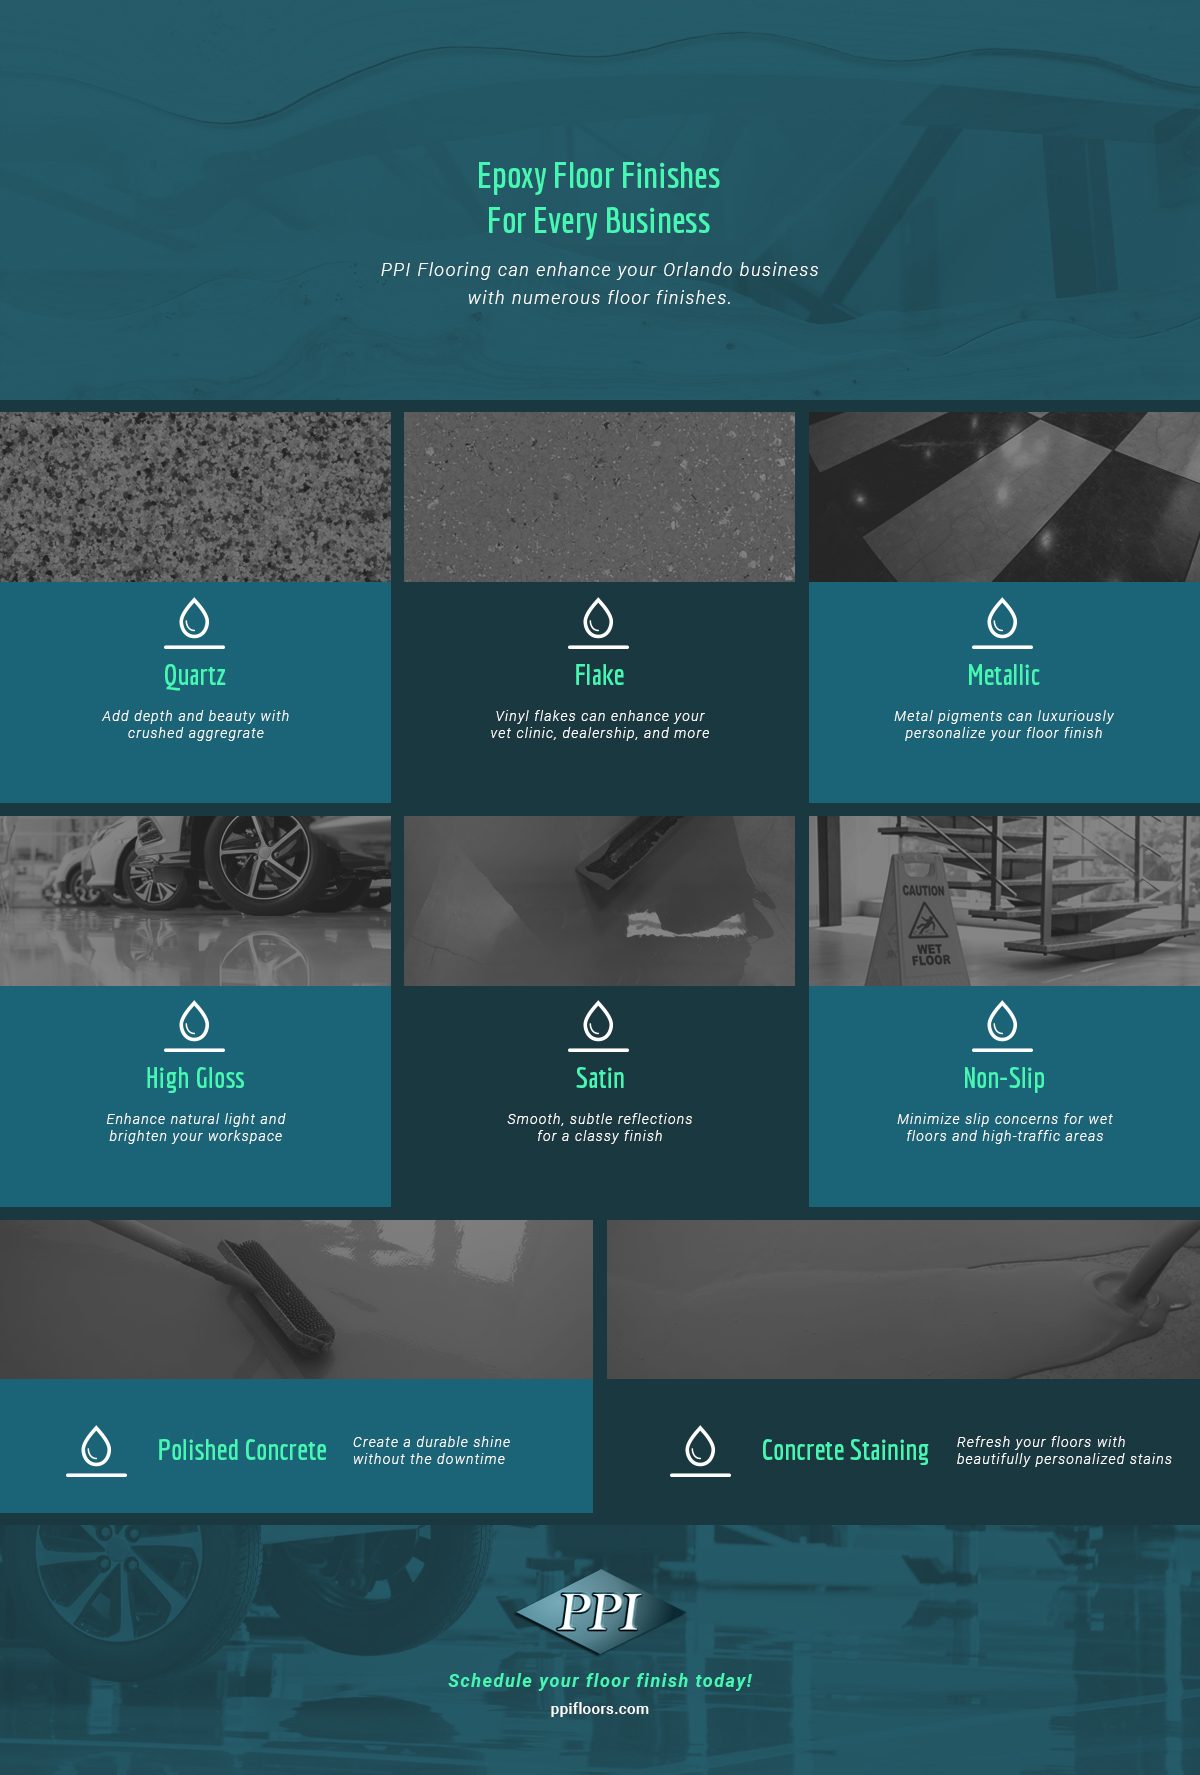 Infographic: Epoxy Floor Finishes for Every Business